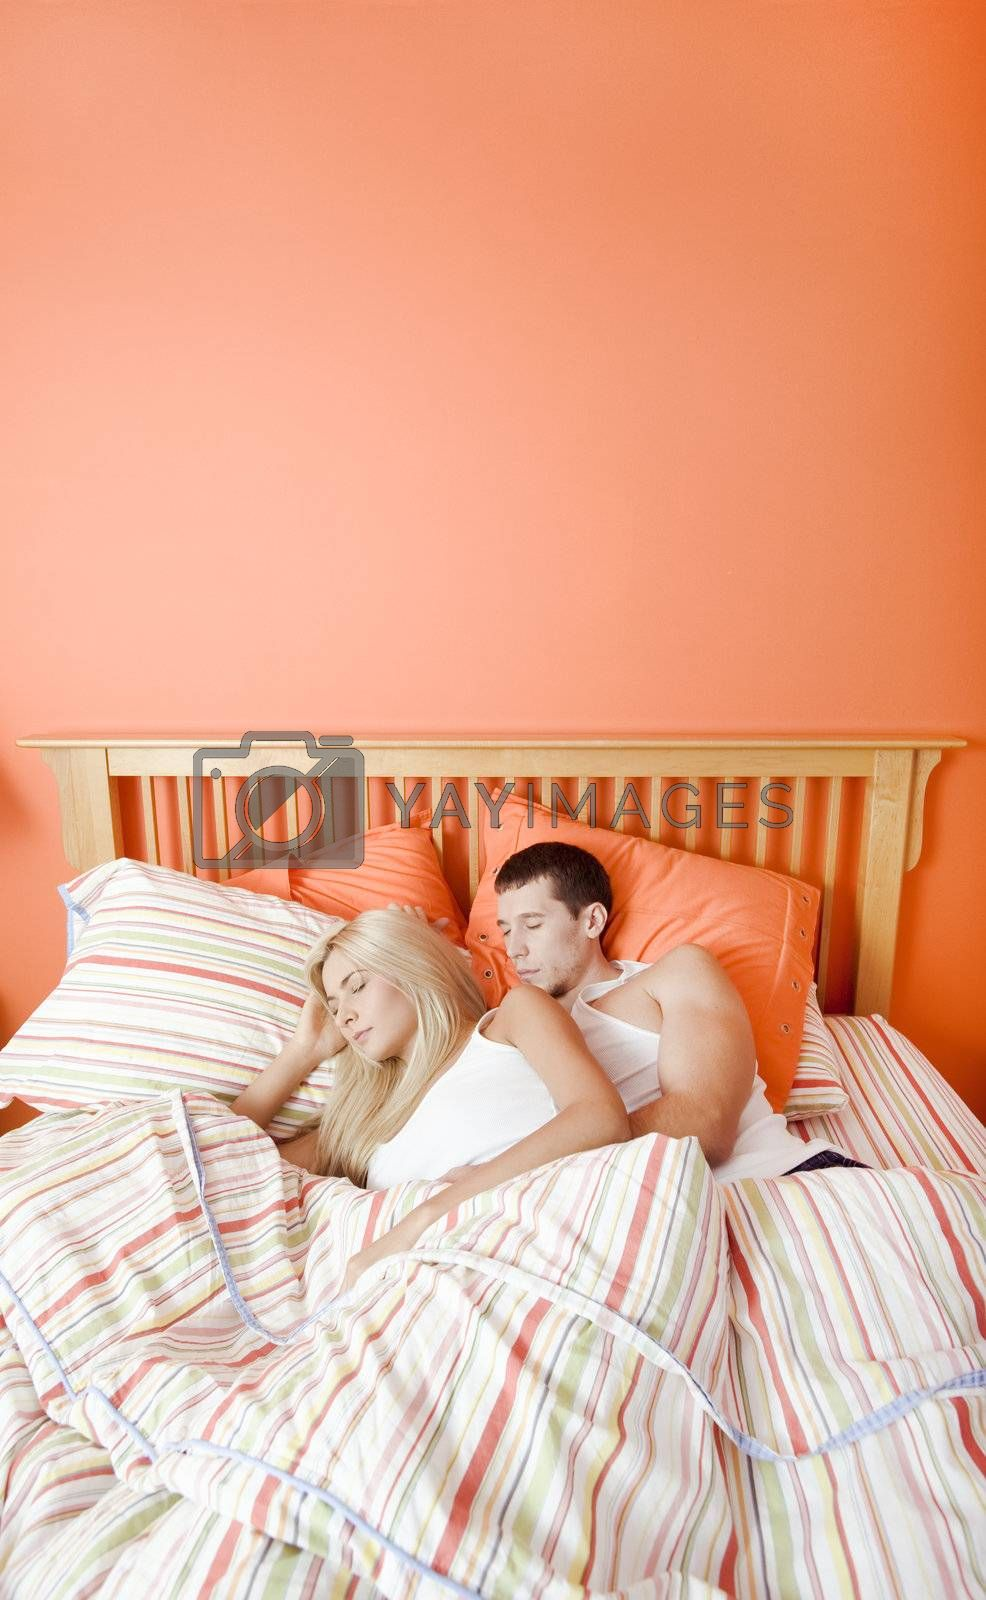 High angle view of young couple sleeping closely together under a striped bedspread. Vertical shot.